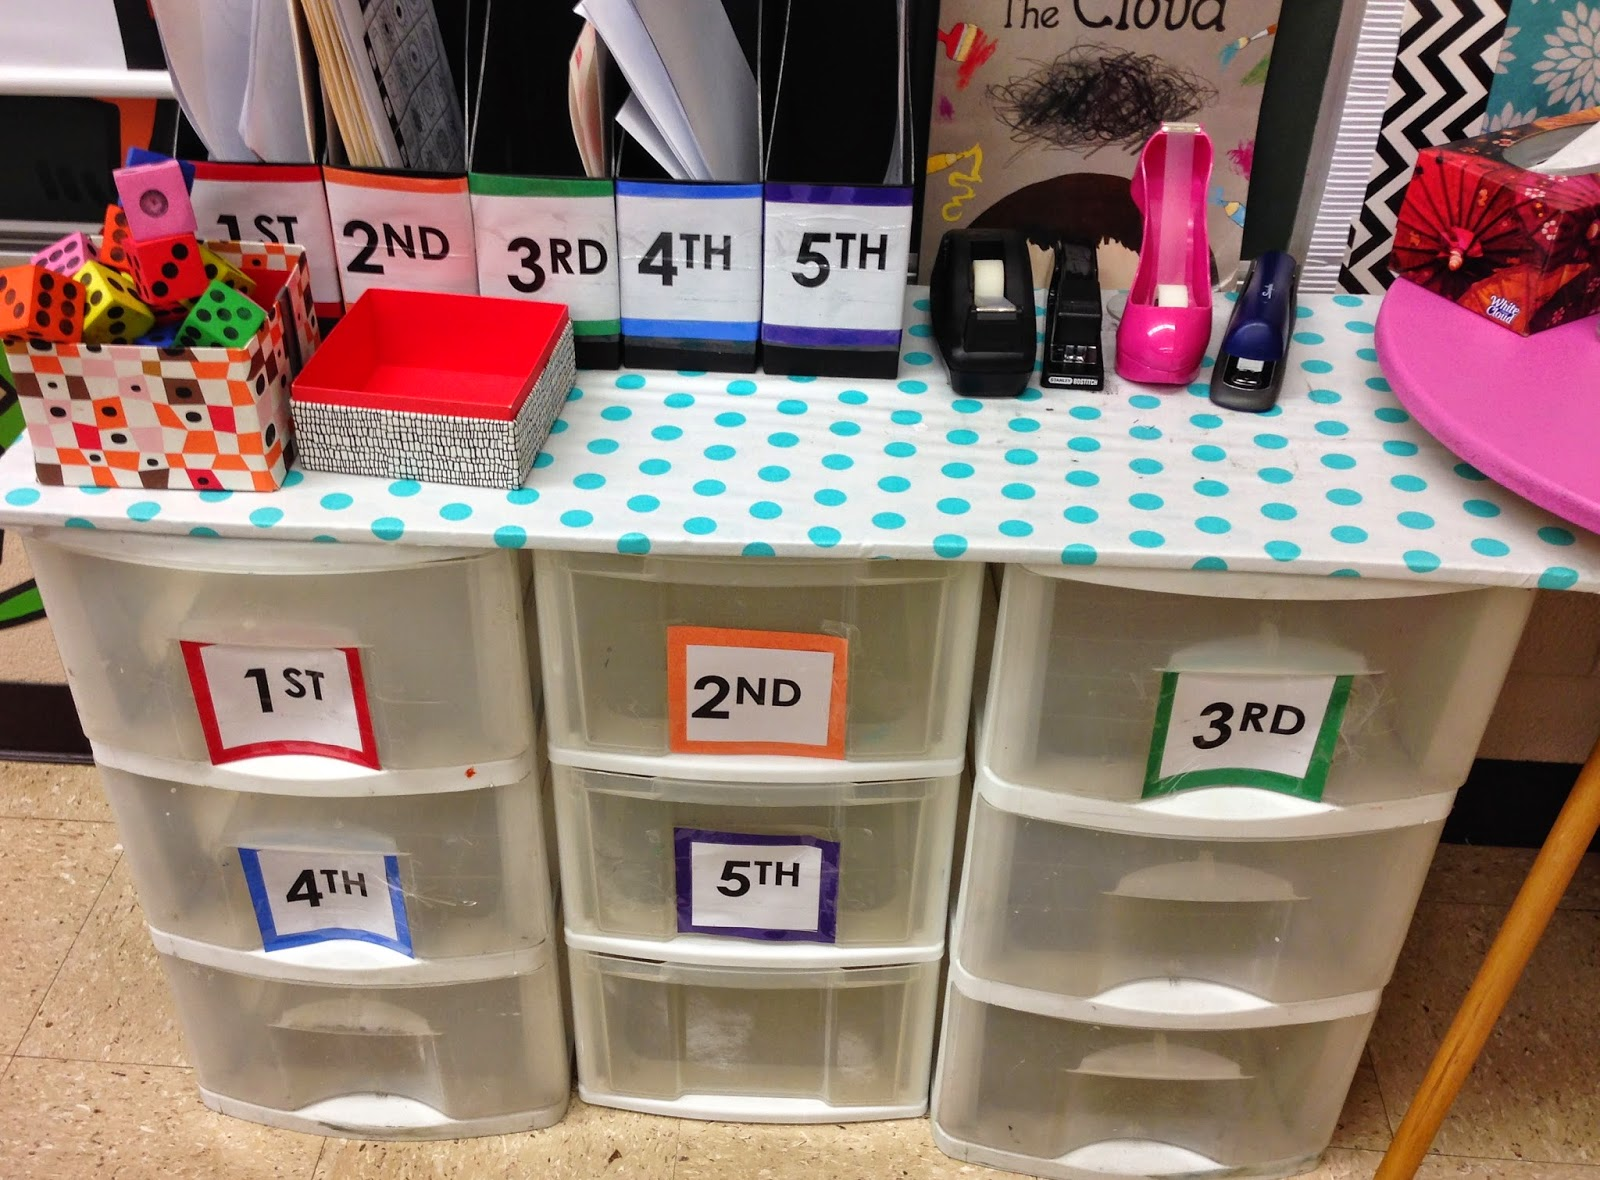 Organize lesson materials by grade and other  tips to save time in the art room on Expressive Monkey's Blog.